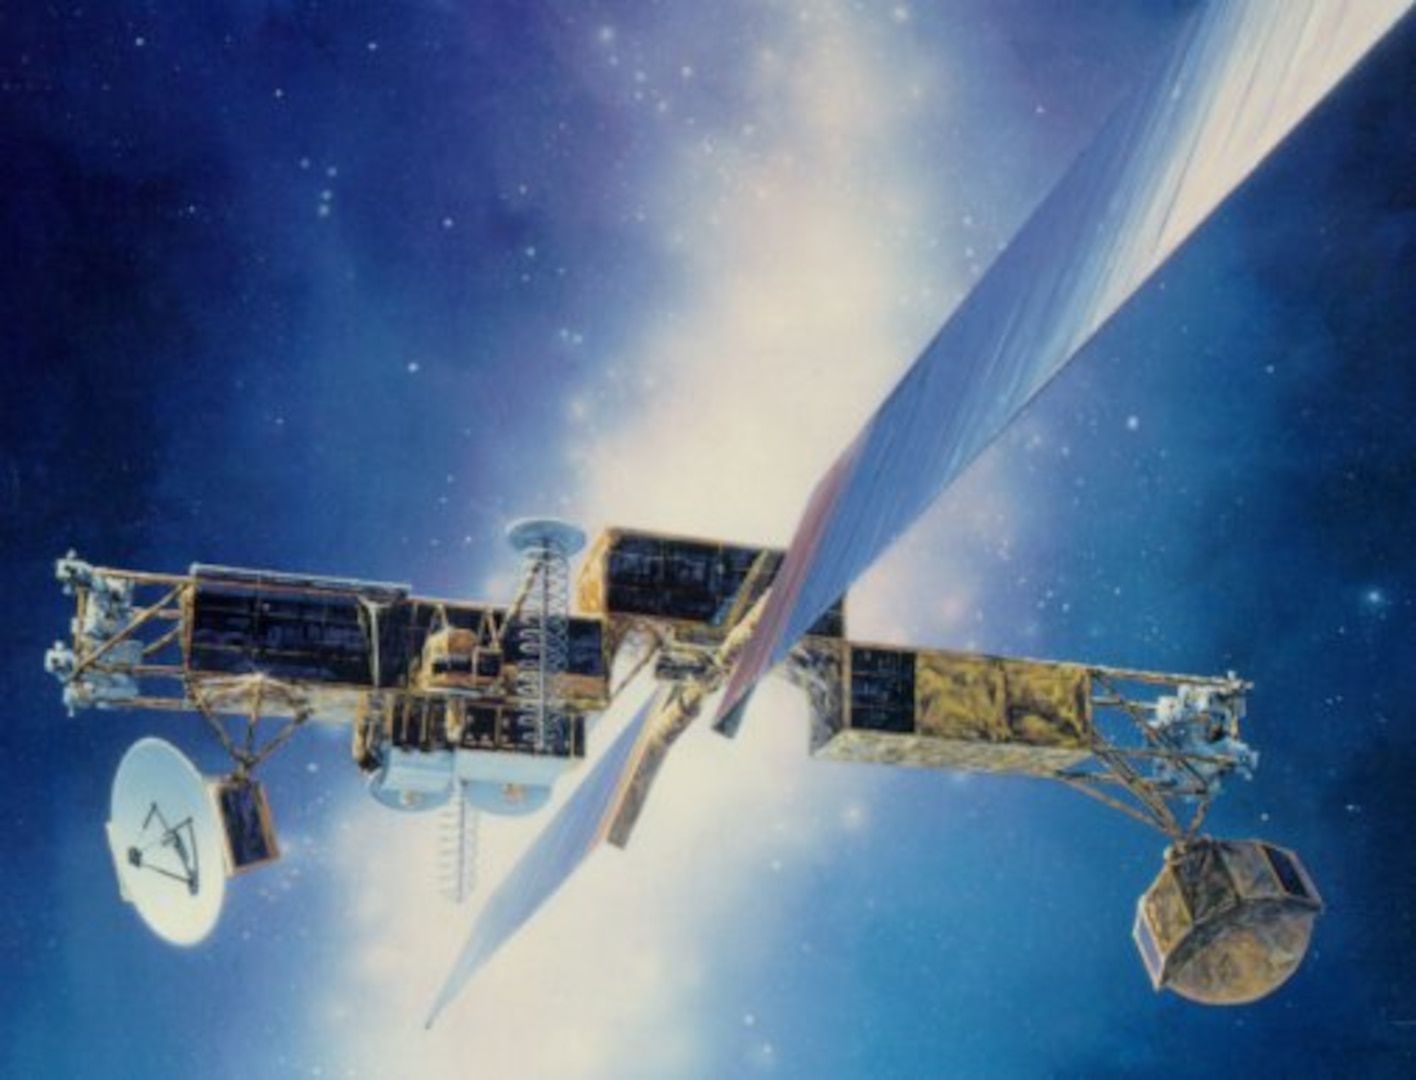 Artwork depicting a satellite floating against the darkness of space